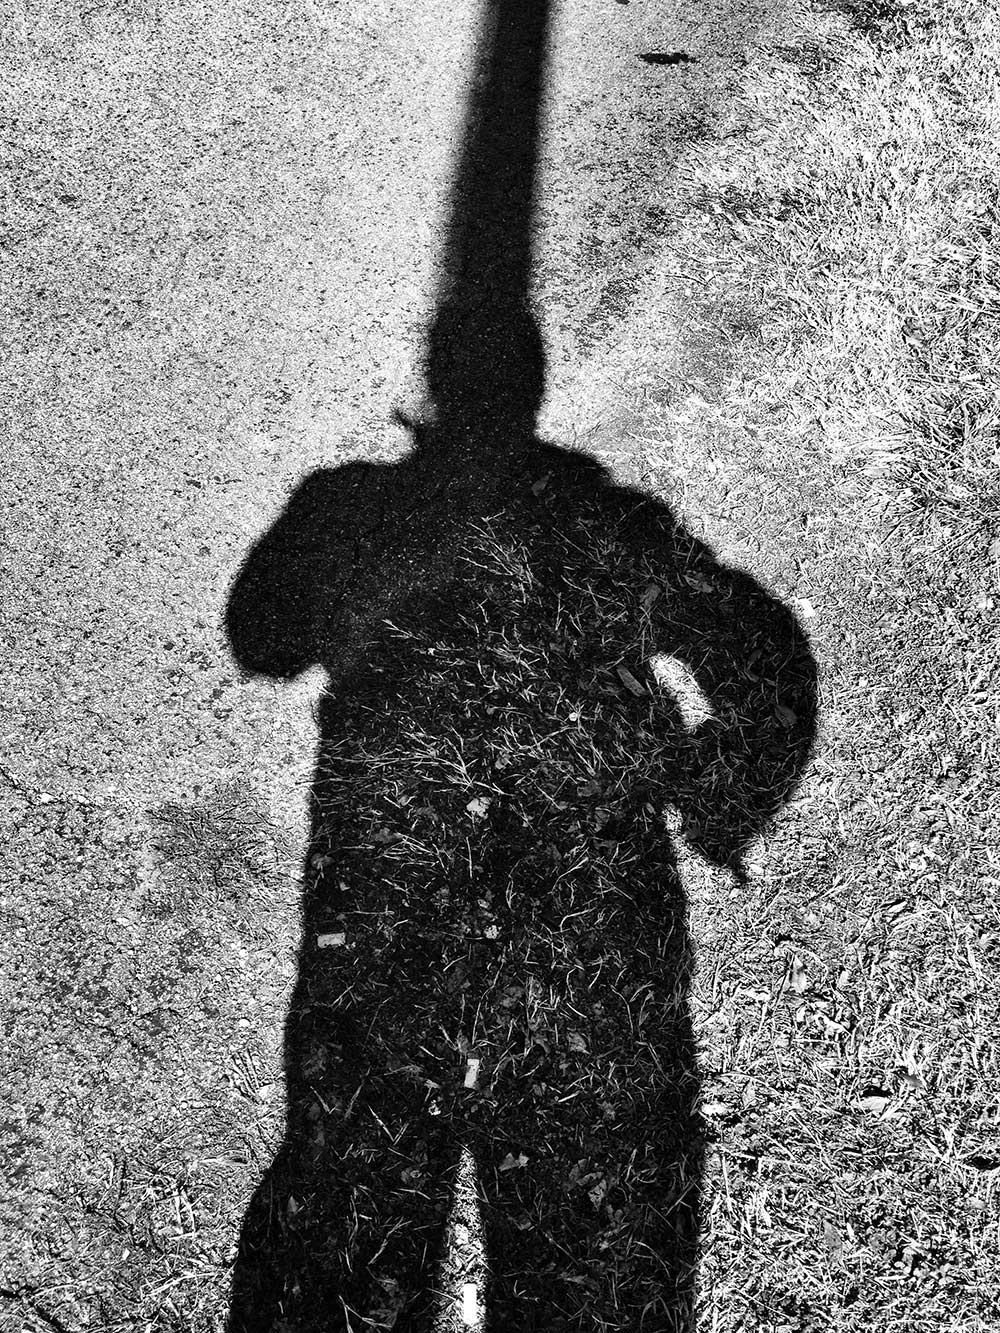 Shadow self-portrait of photographer Keith Dotson with a telephone pole shadow